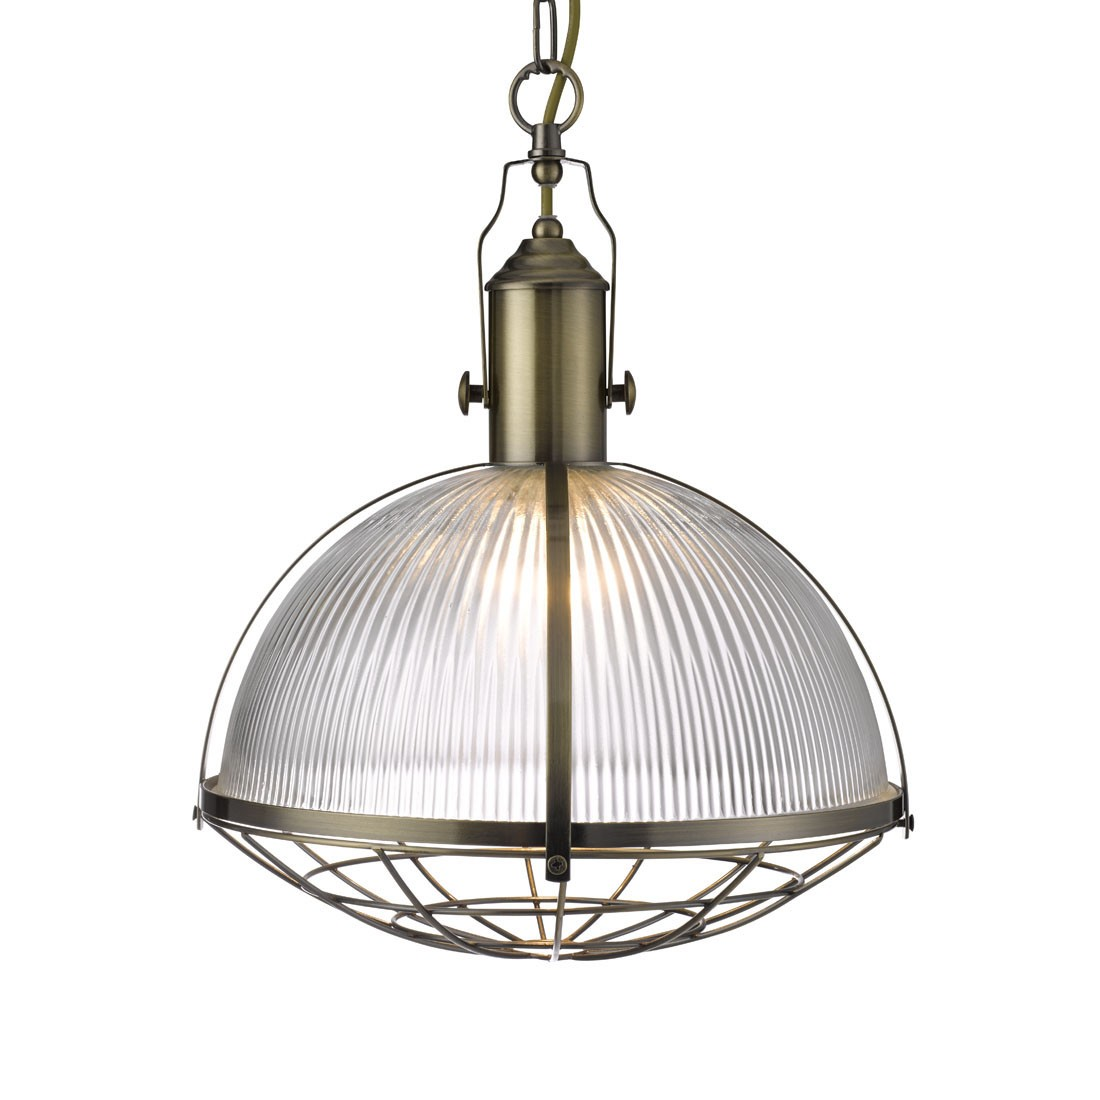 SATIN SILVER PENDANT LIGHT WITH OPAL GLASS SHADE 1172